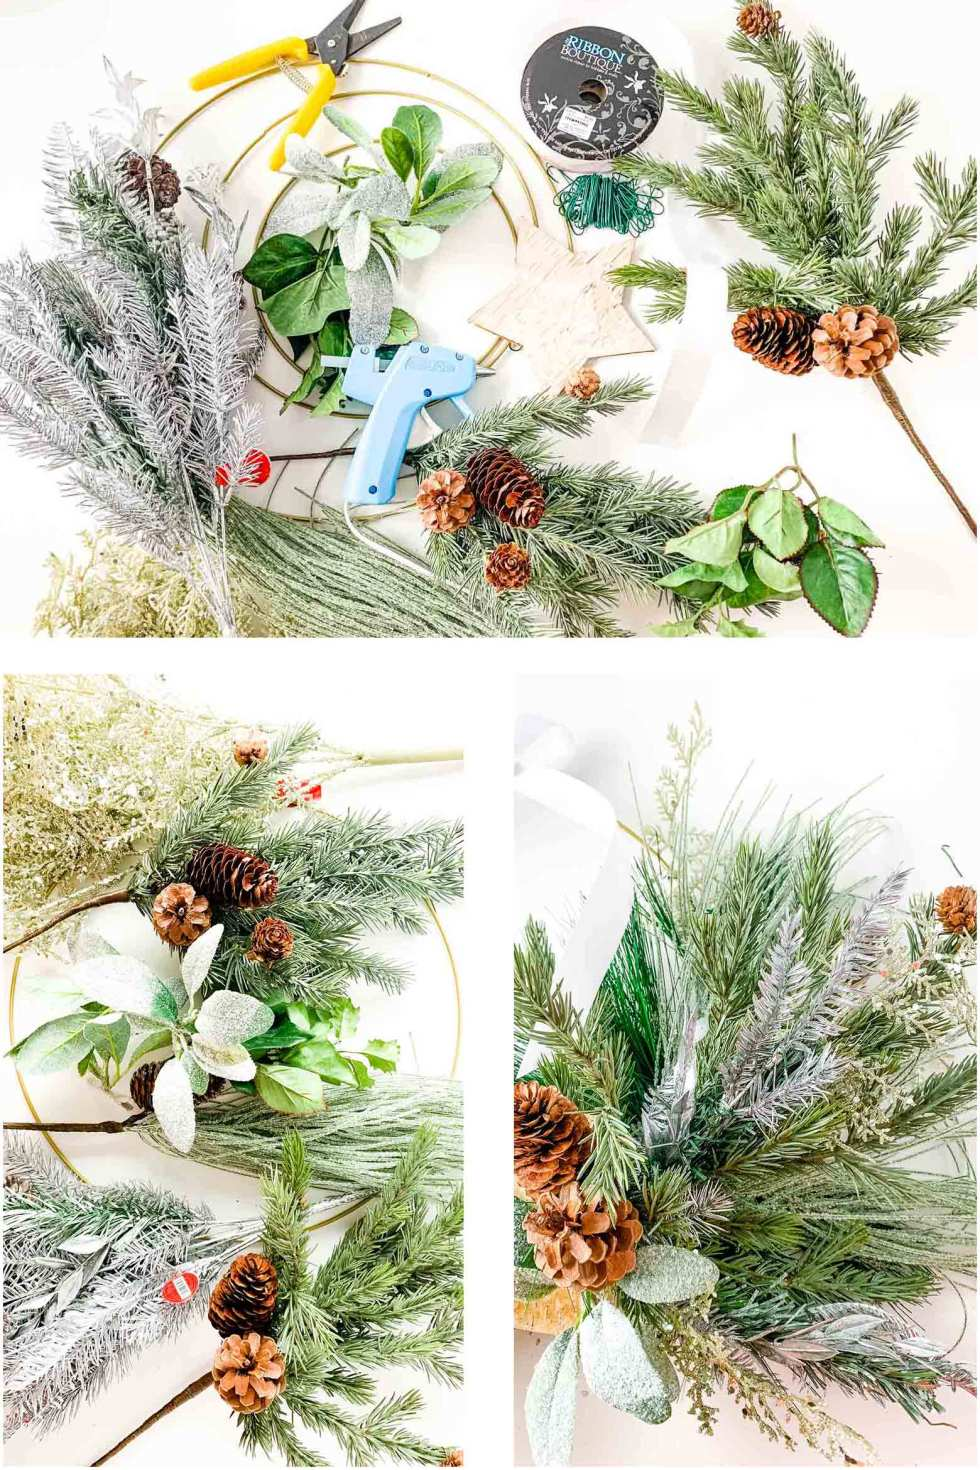 gather supplies to make a wreath with lots of texture on a metal hoop